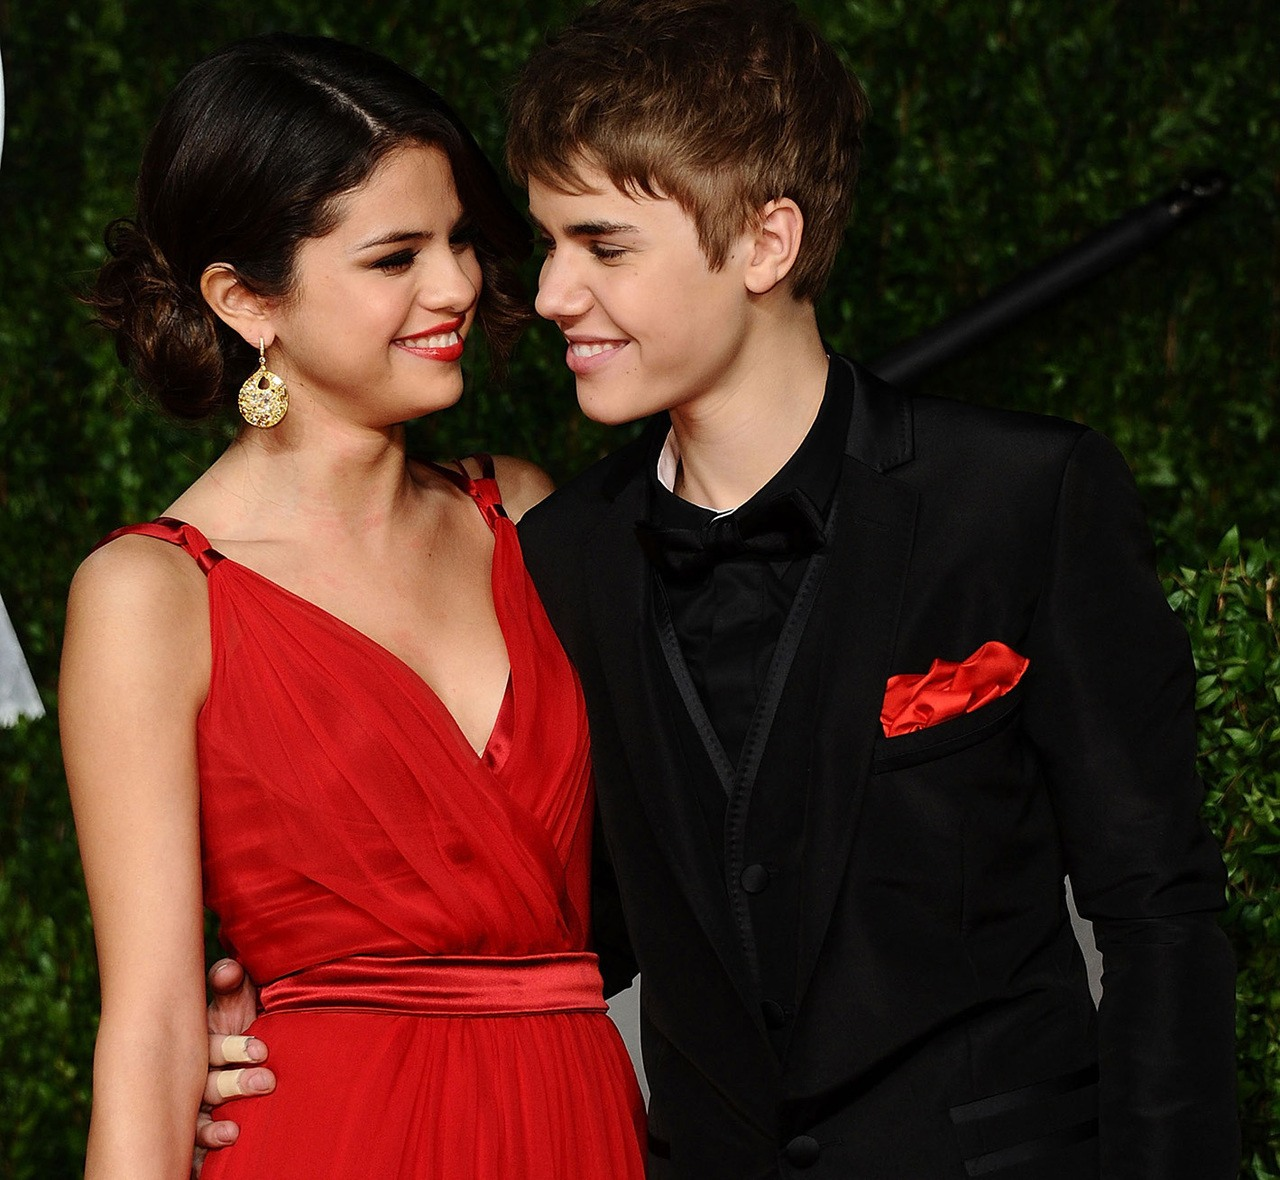 WEST HOLLYWOOD, CA - FEBRUARY 27: Actress Selena Gomez (L) and singer Justin Bieber arrive at the Vanity Fair Oscar party hosted by Graydon Carter held at Sunset Tower on February 27, 2011 in West Hollywood, California. (Photo by Michael Buckner/WireImage)